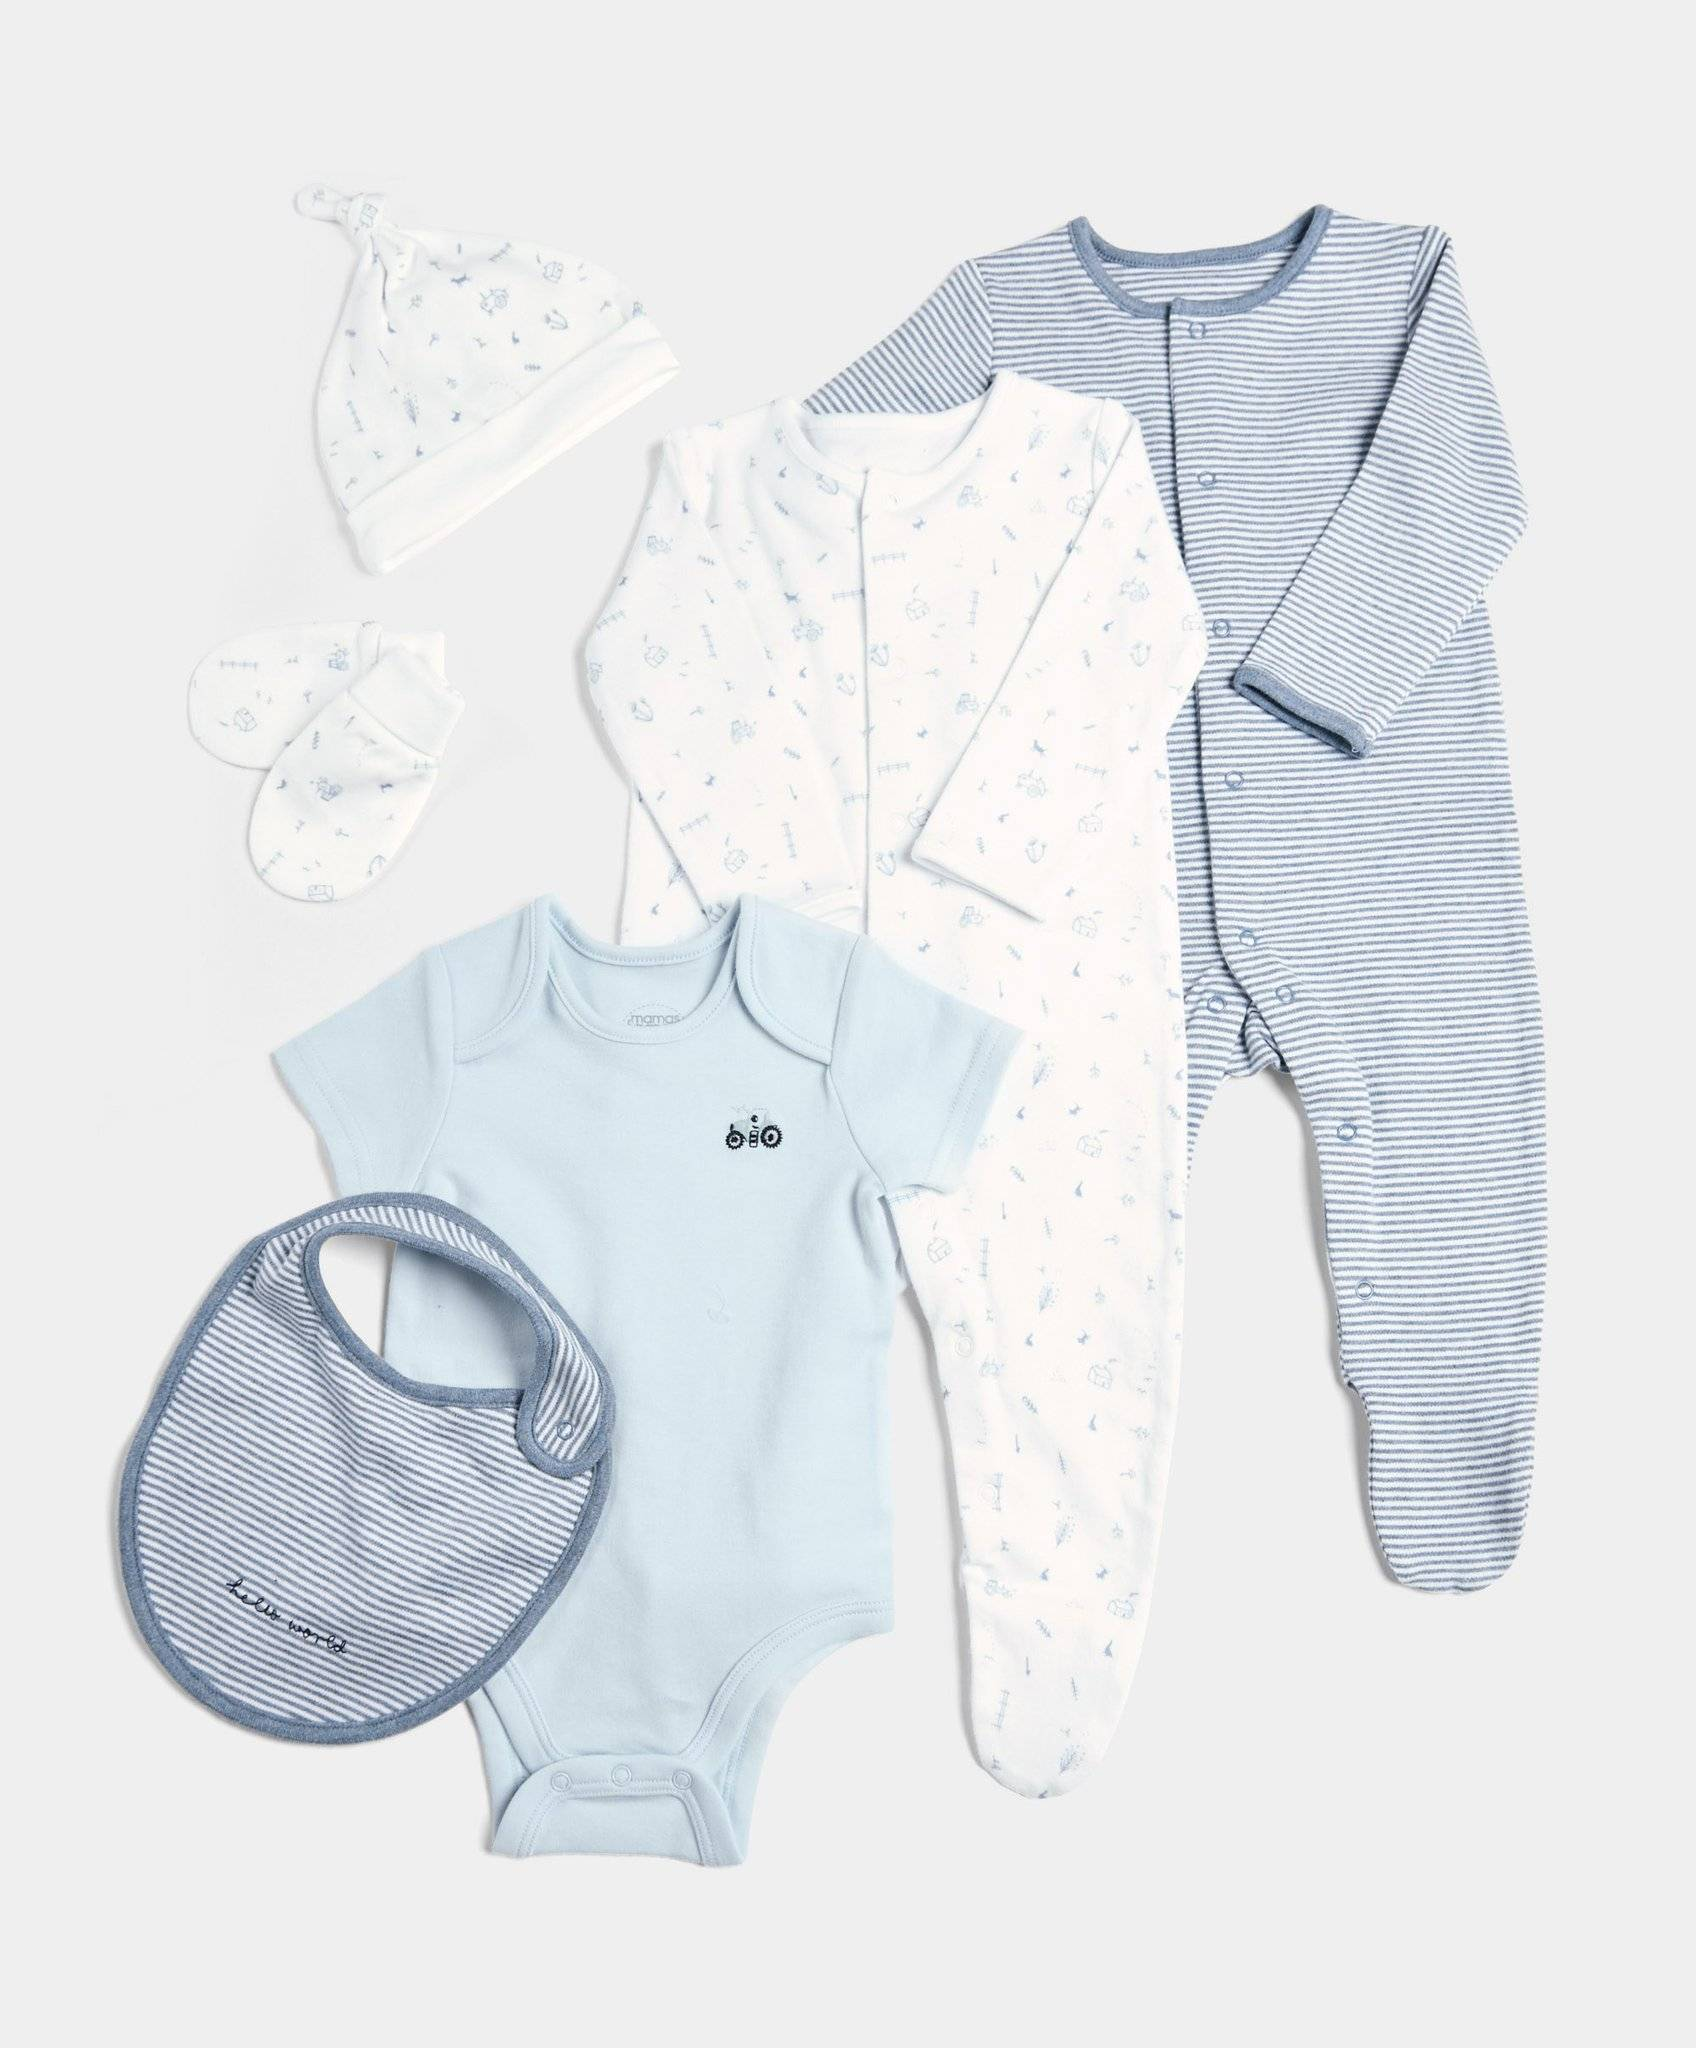 6 Piece Set Blue